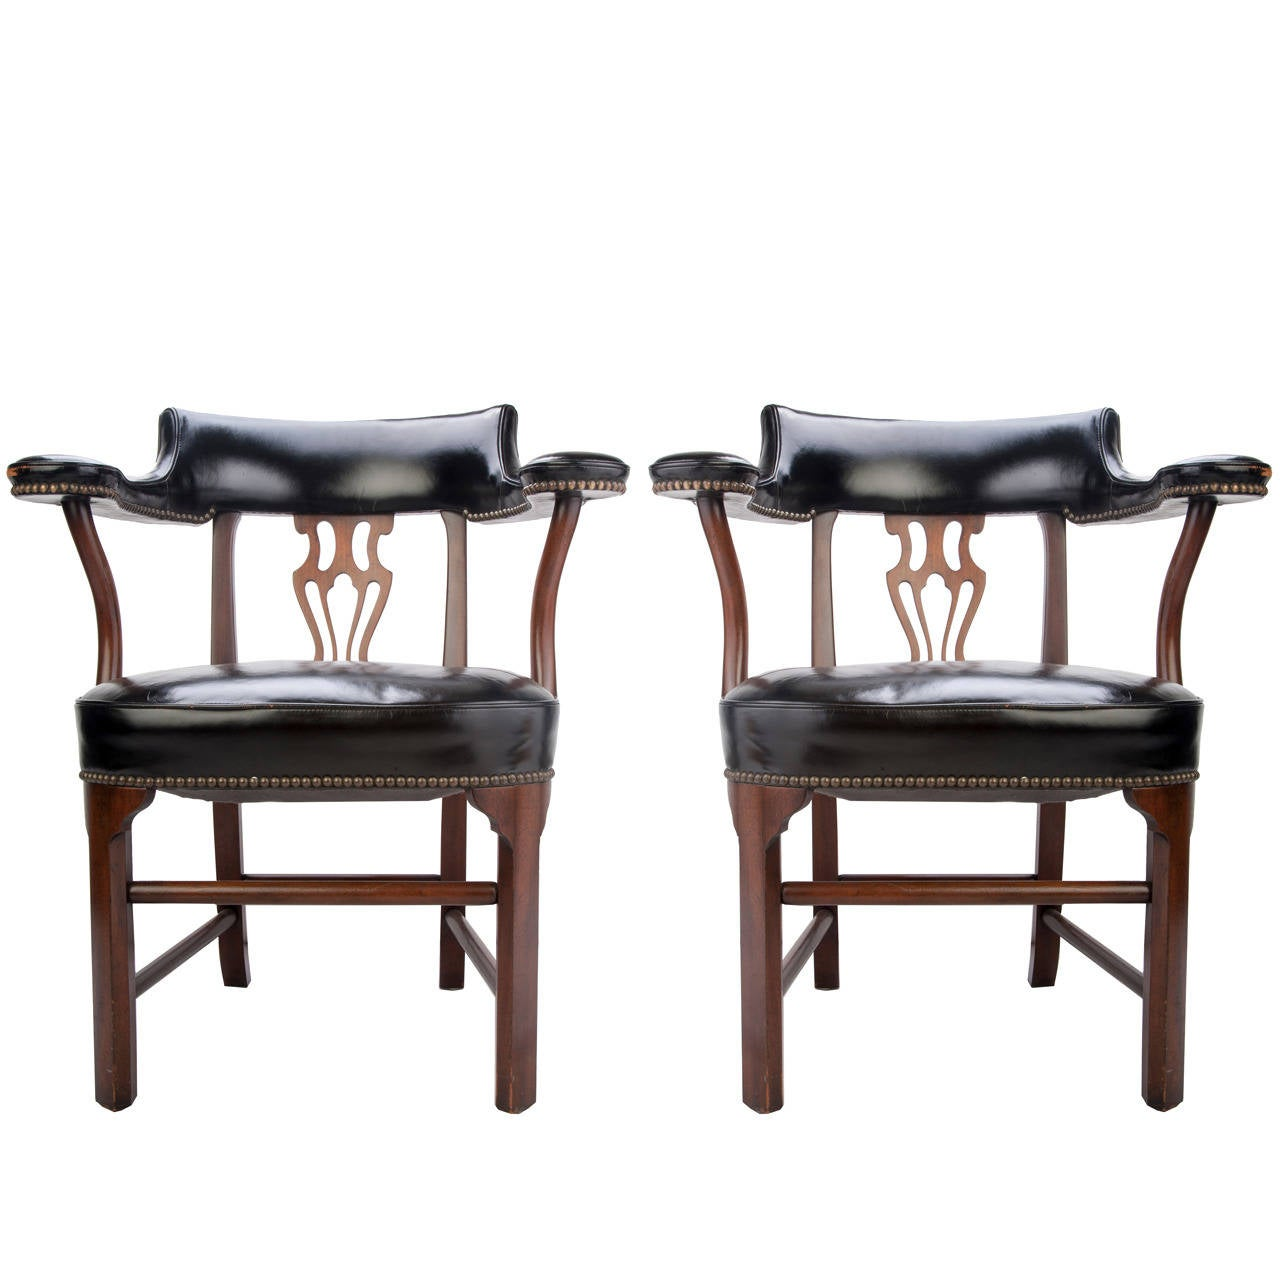 Kittinger leather bankers chairs for sale at 1stdibs